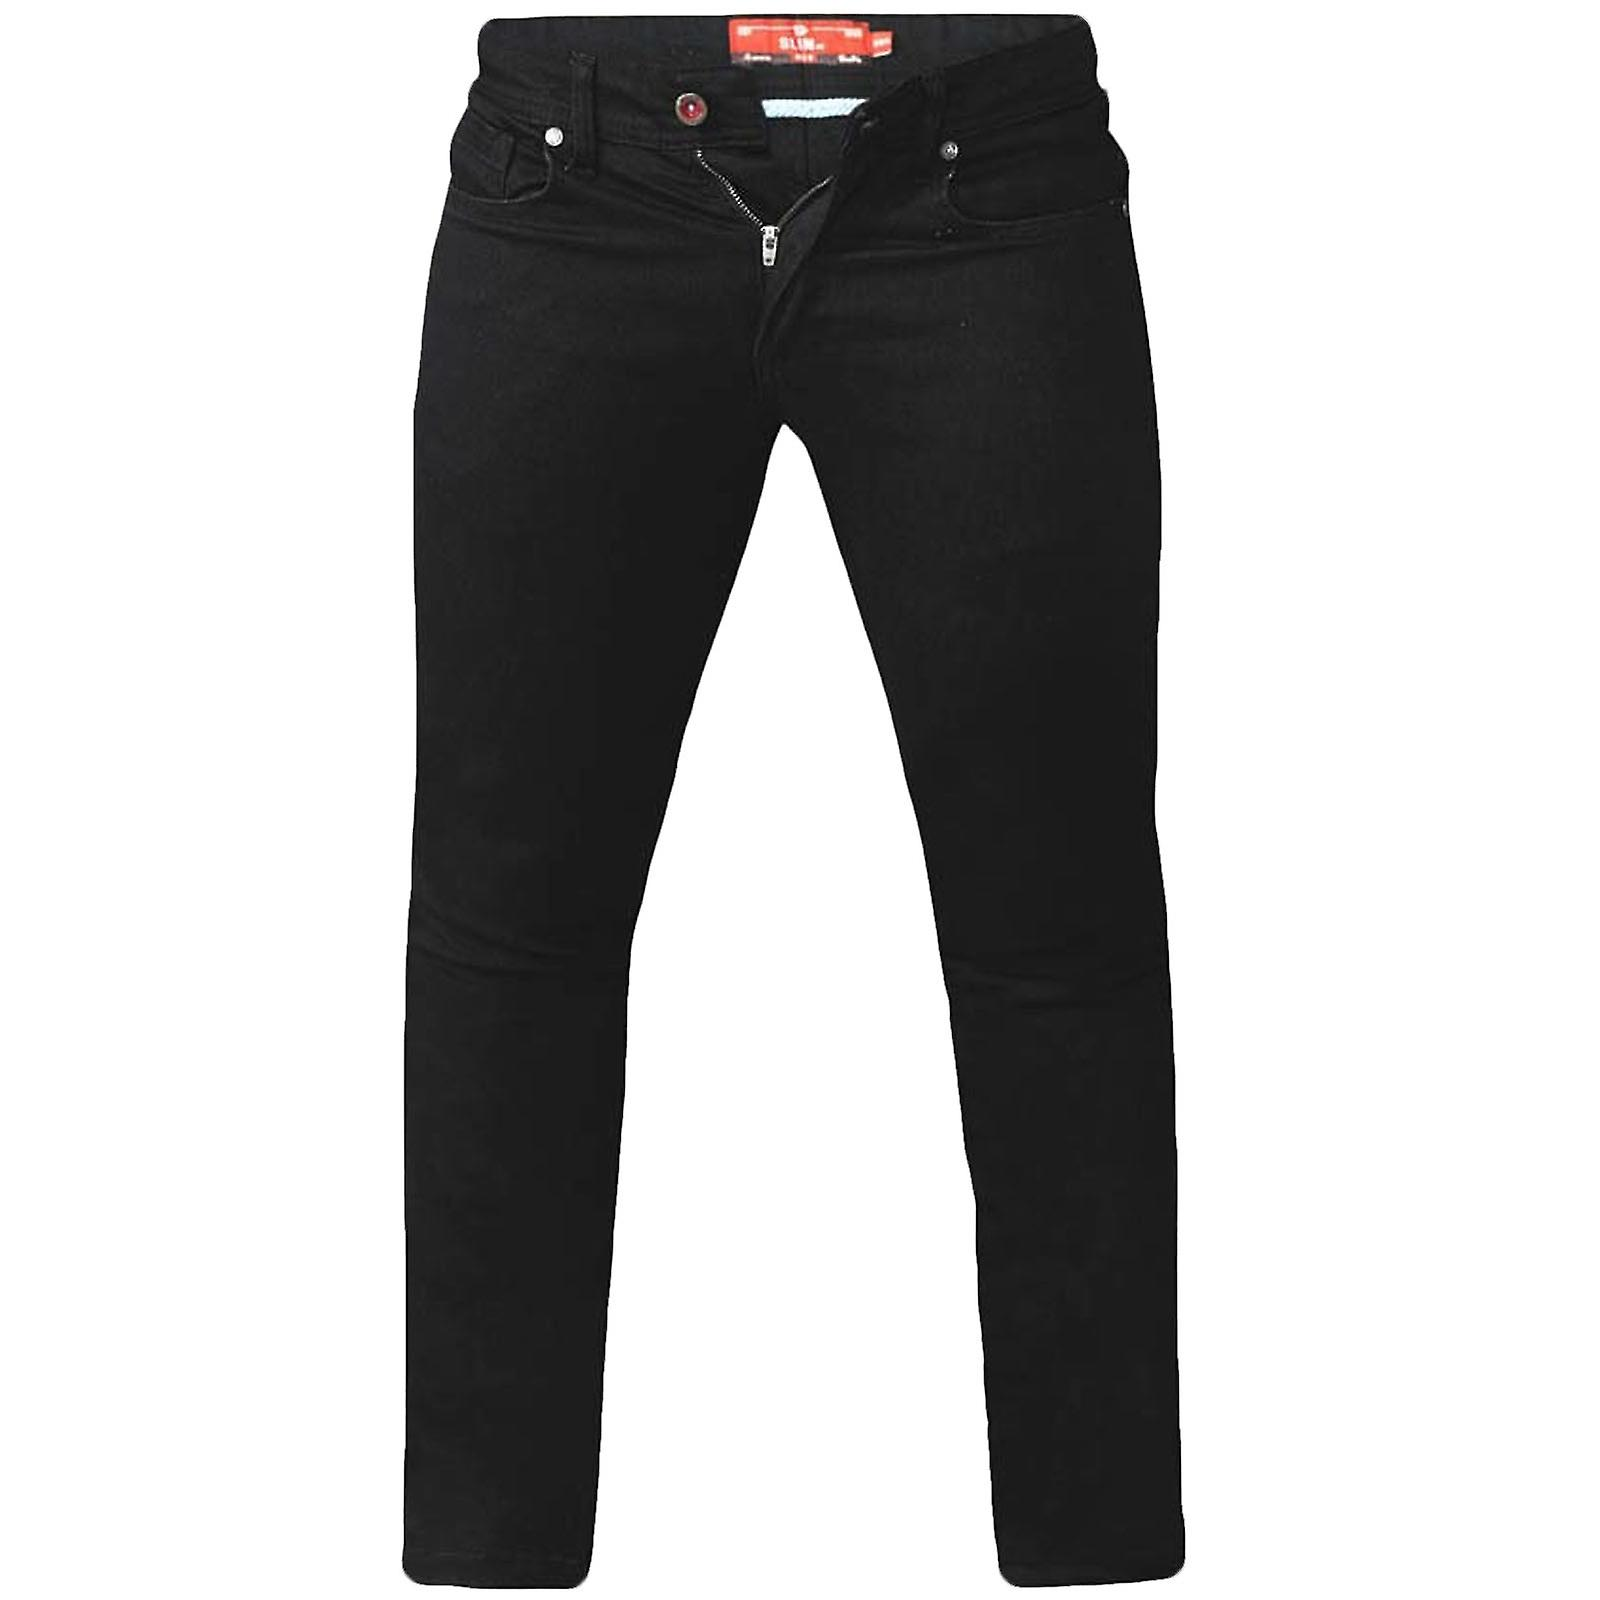 D555 Mens Claude Big Tall King Size Slim Fit Stretch Jeans Trousers - Black